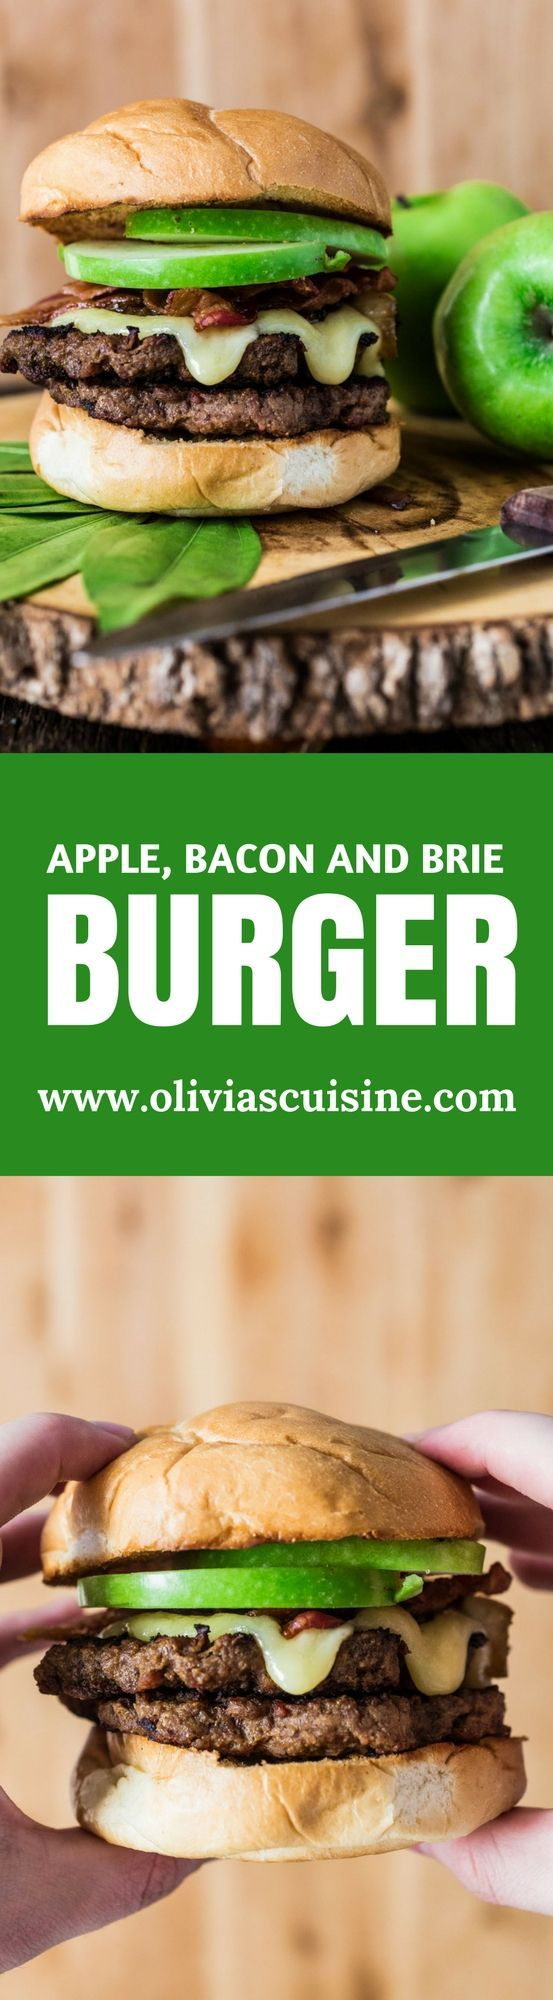 Apple, Bacon and Brie Burger | http://www.oliviascuisine.com | The epitome of fall, this delicious Apple, Bacon and Brie Burger will have you licking your fingers! (Sponsored by Tyson Foods, Inc.) AD